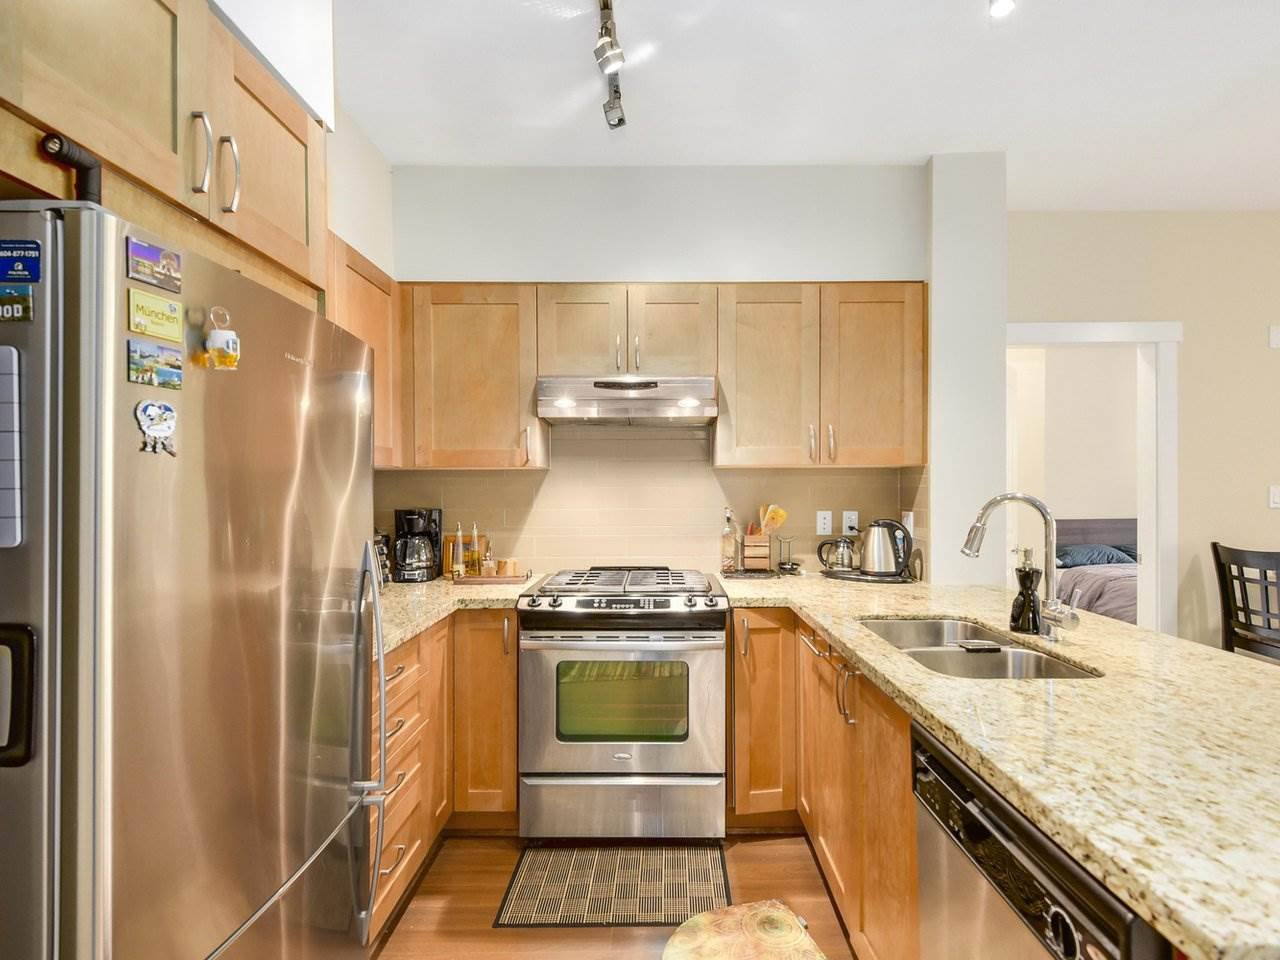 Photo 6: Photos: 106 2601 WHITELEY COURT in North Vancouver: Lynn Valley Condo for sale : MLS®# R2186381